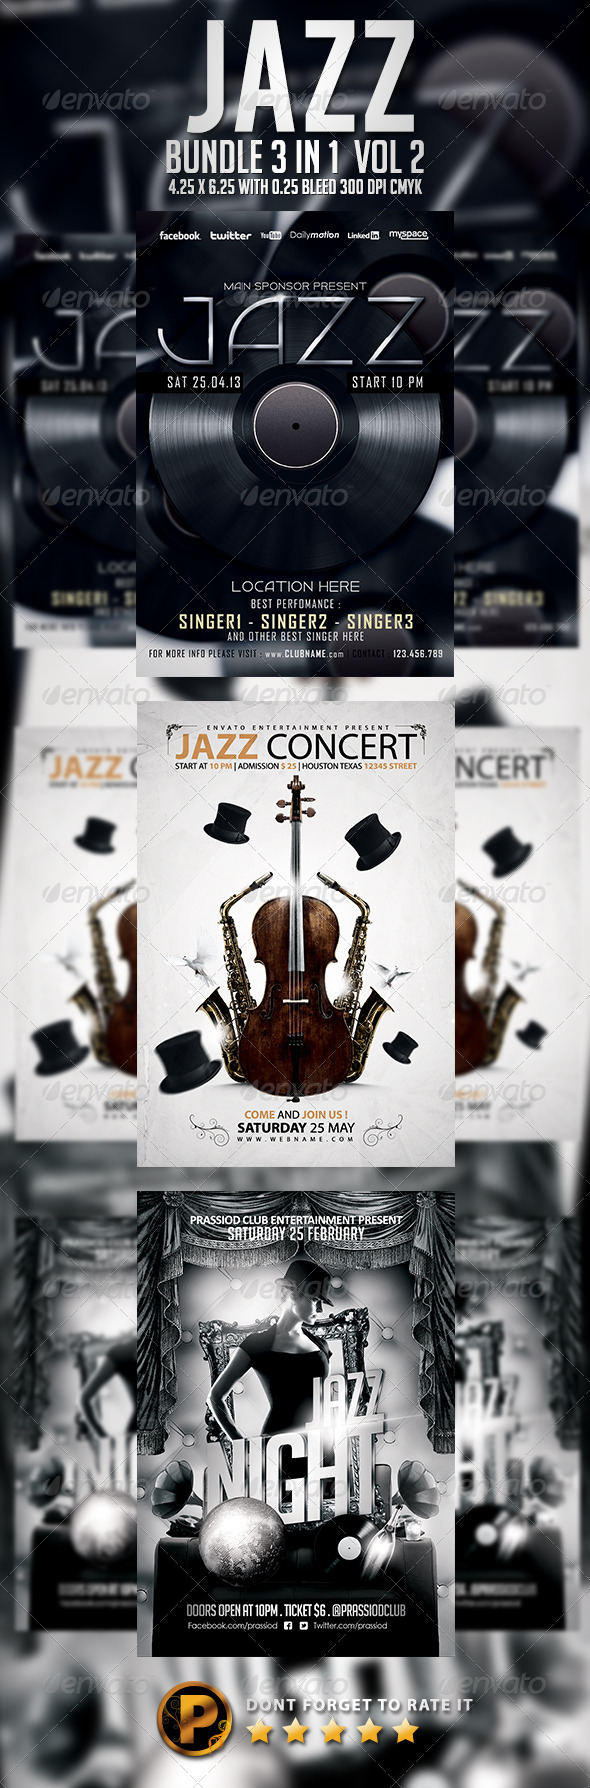 Jazz Flyer Template - Bundle 3 In 1 - Concerts Events